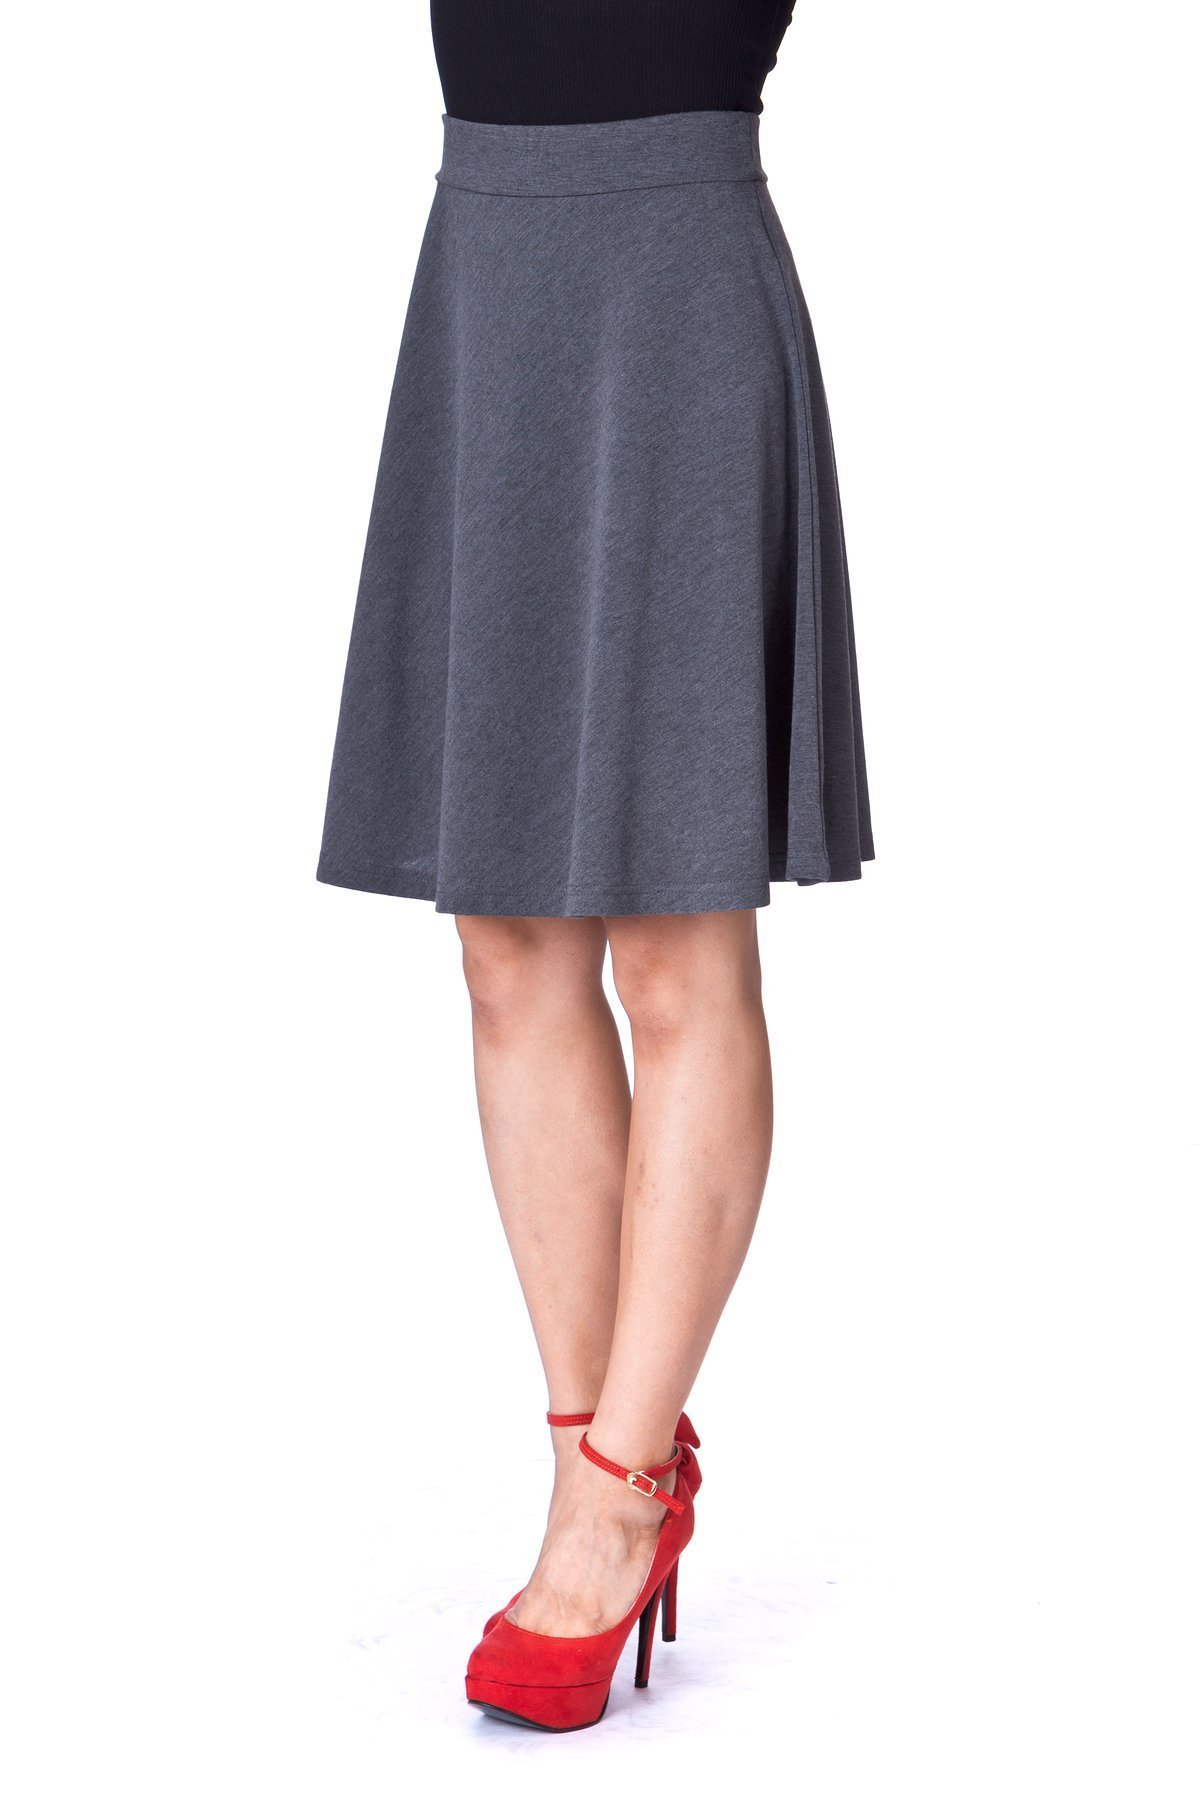 Simple Stretch A line Flared Knee Length Skirt Charcoal 5 1